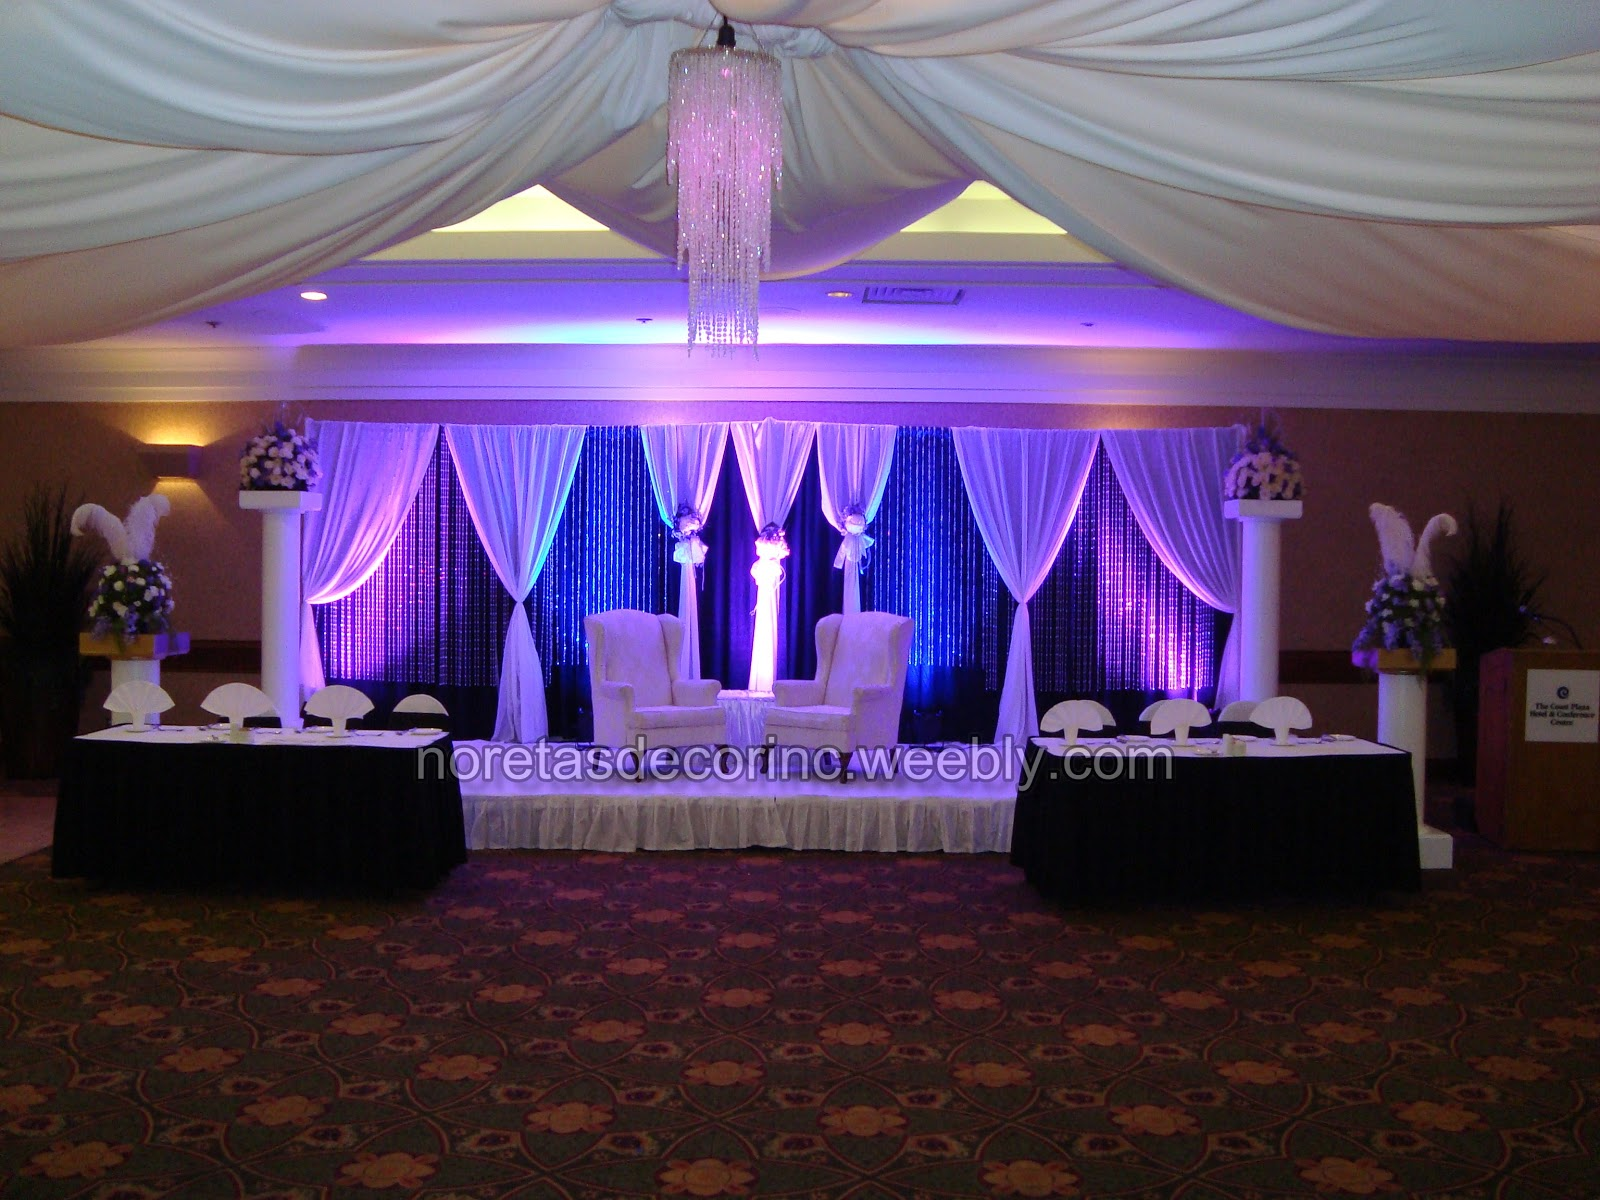 wedding decorations wedding ceremony decorations wedding